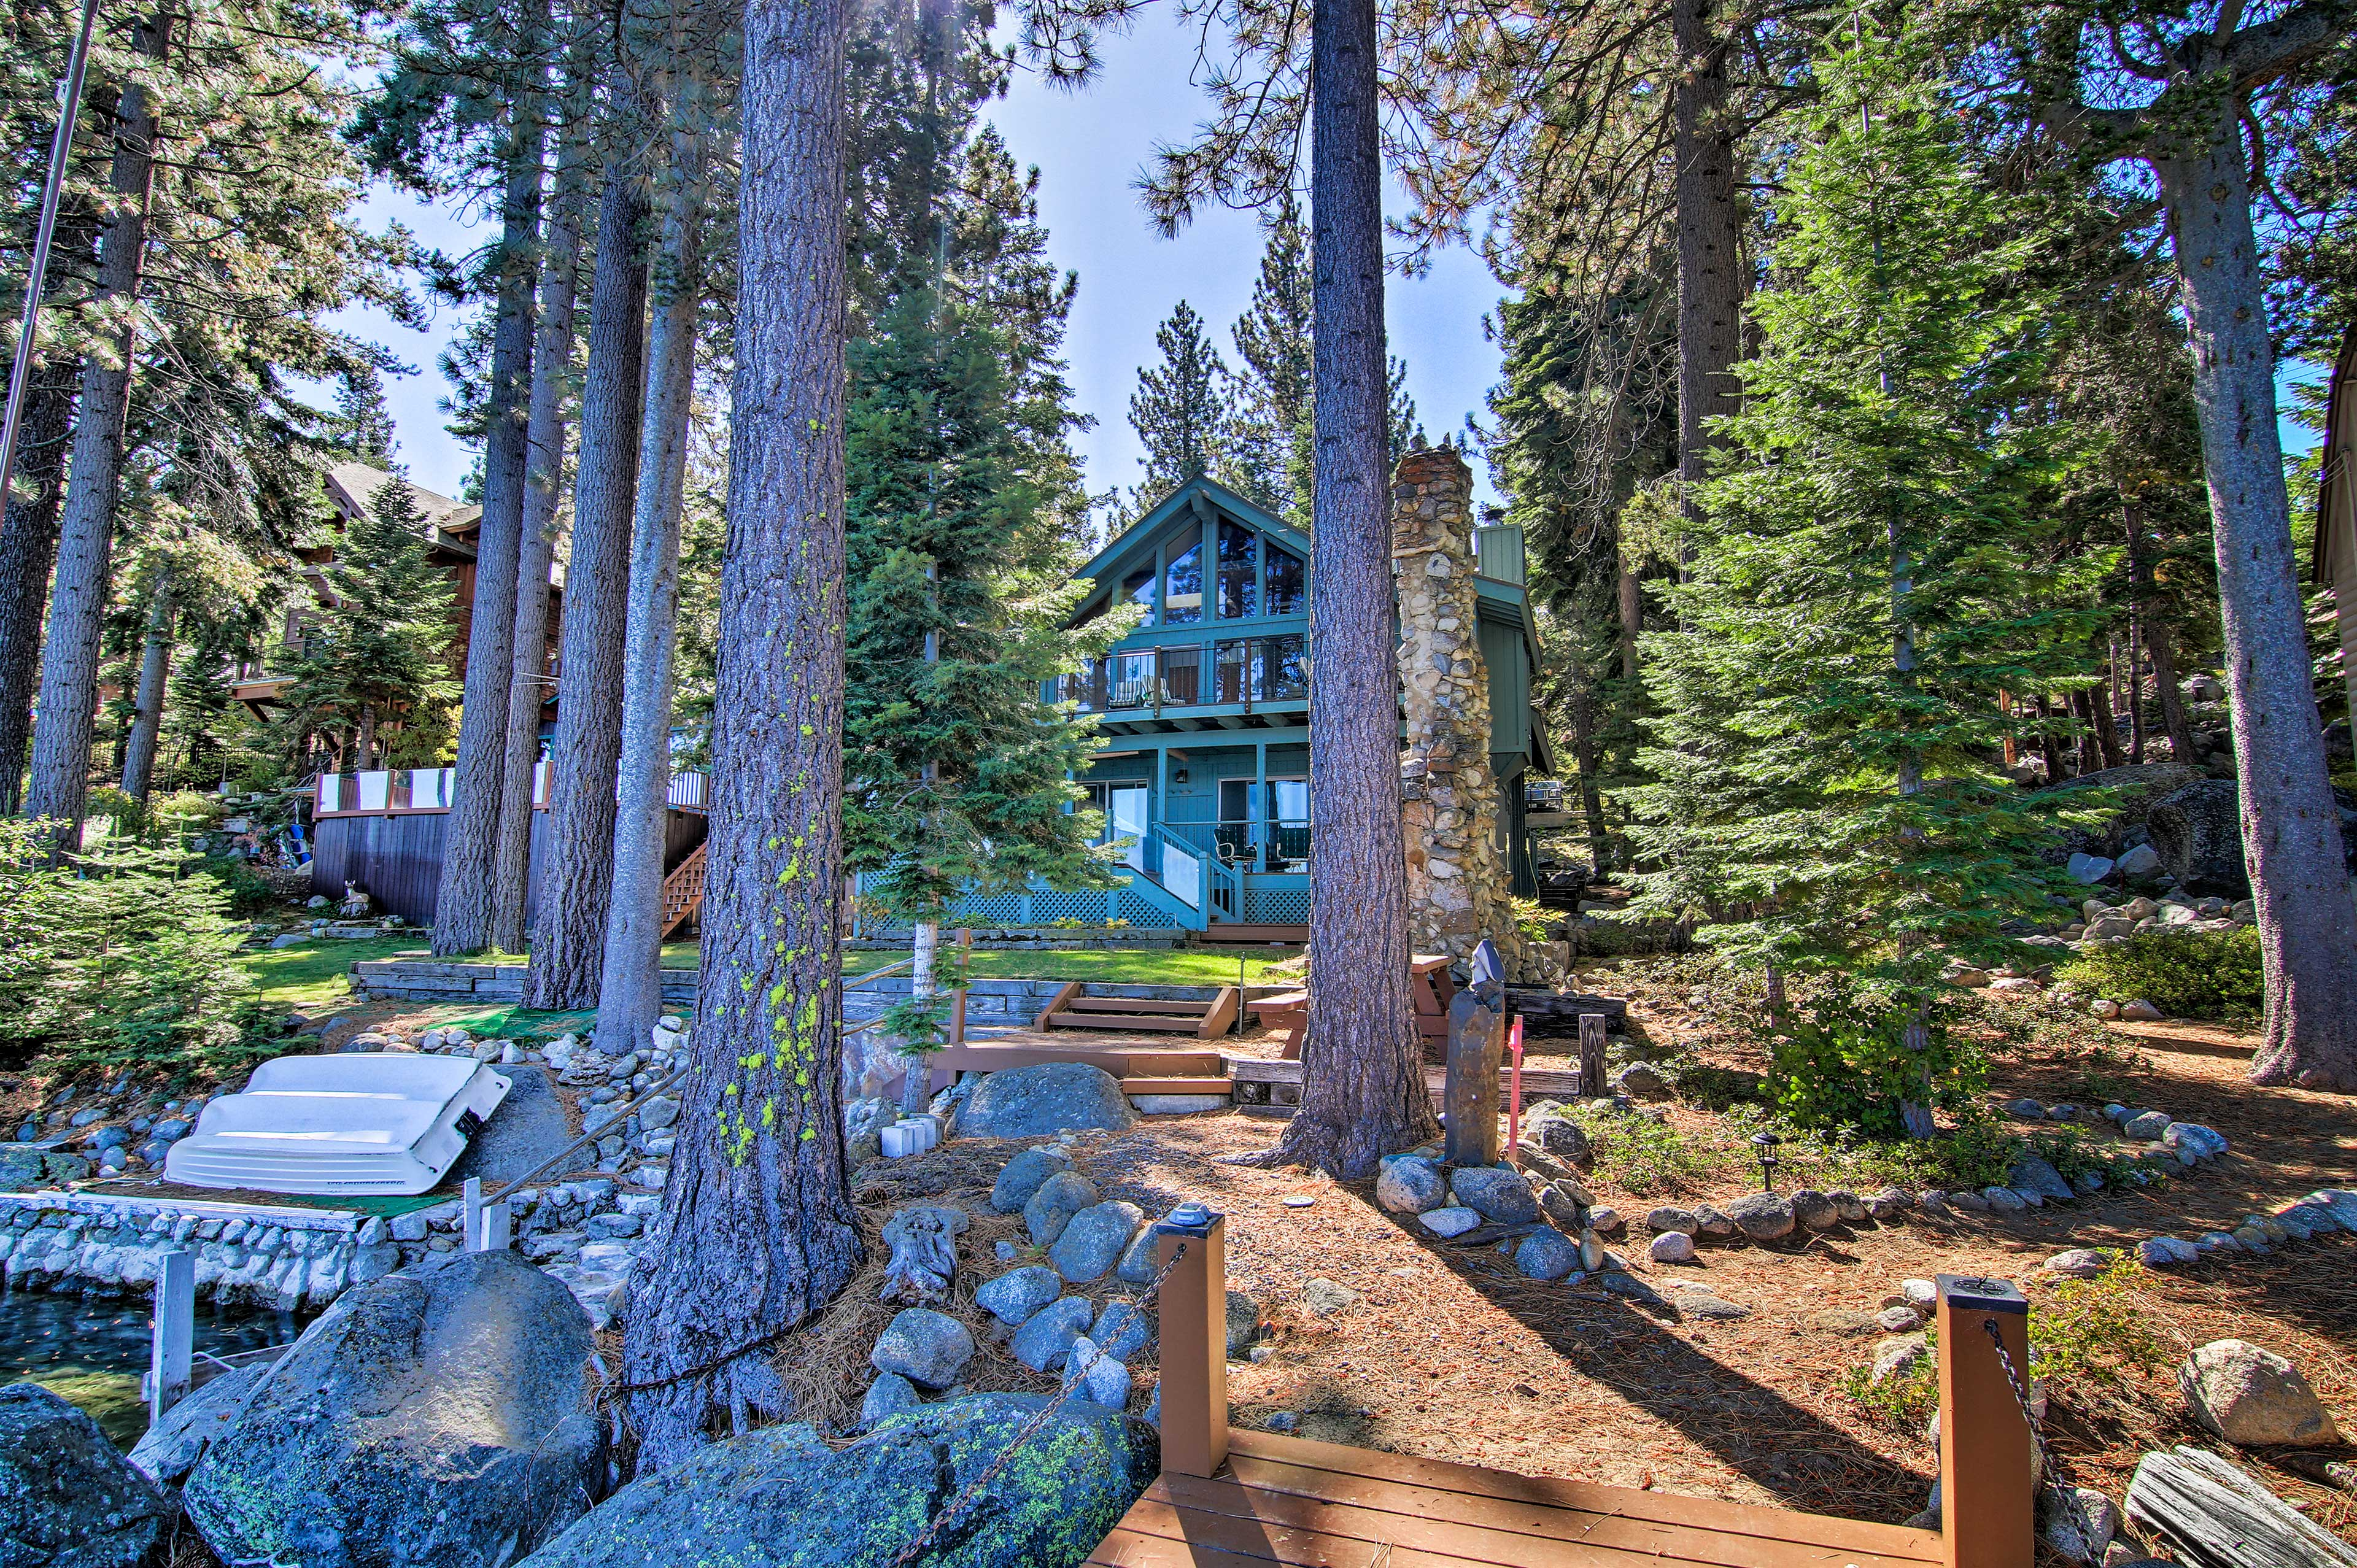 Walk through the wooded yard of the property to get to the private dock.